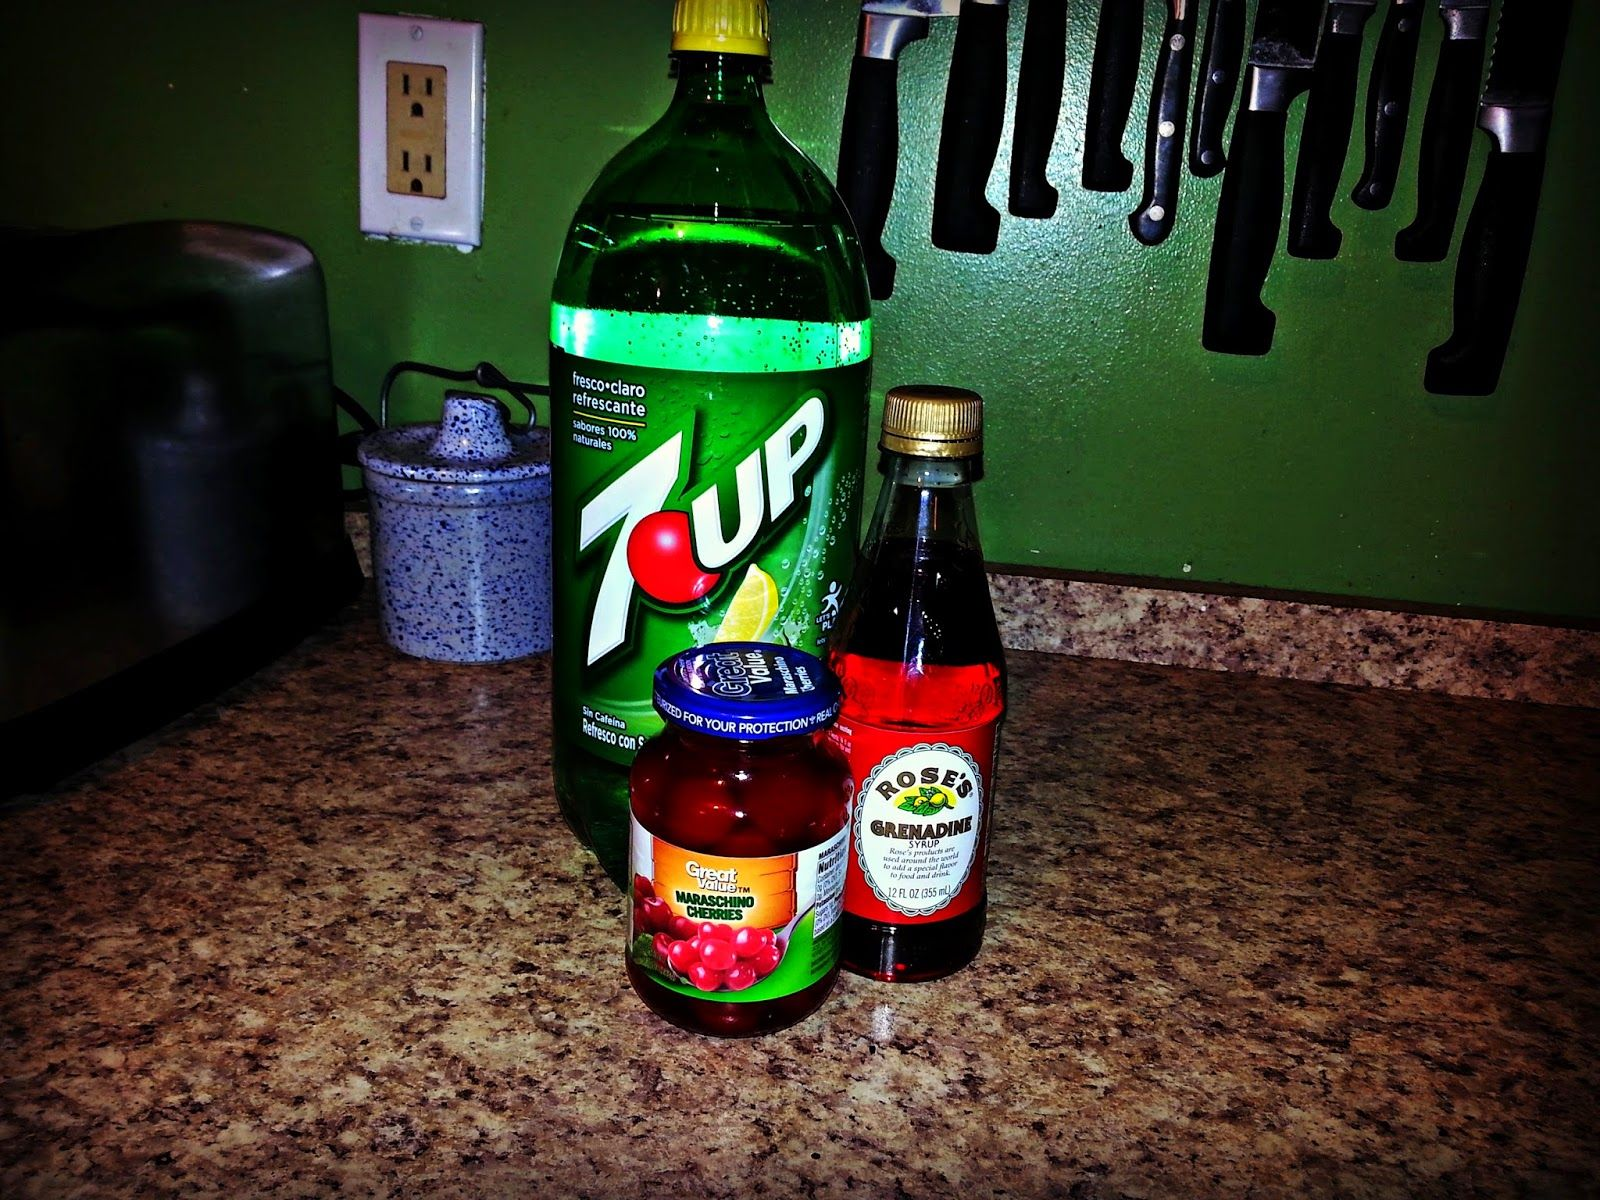 cherry bomb mocktail holiday drink ideas from 7up and canada